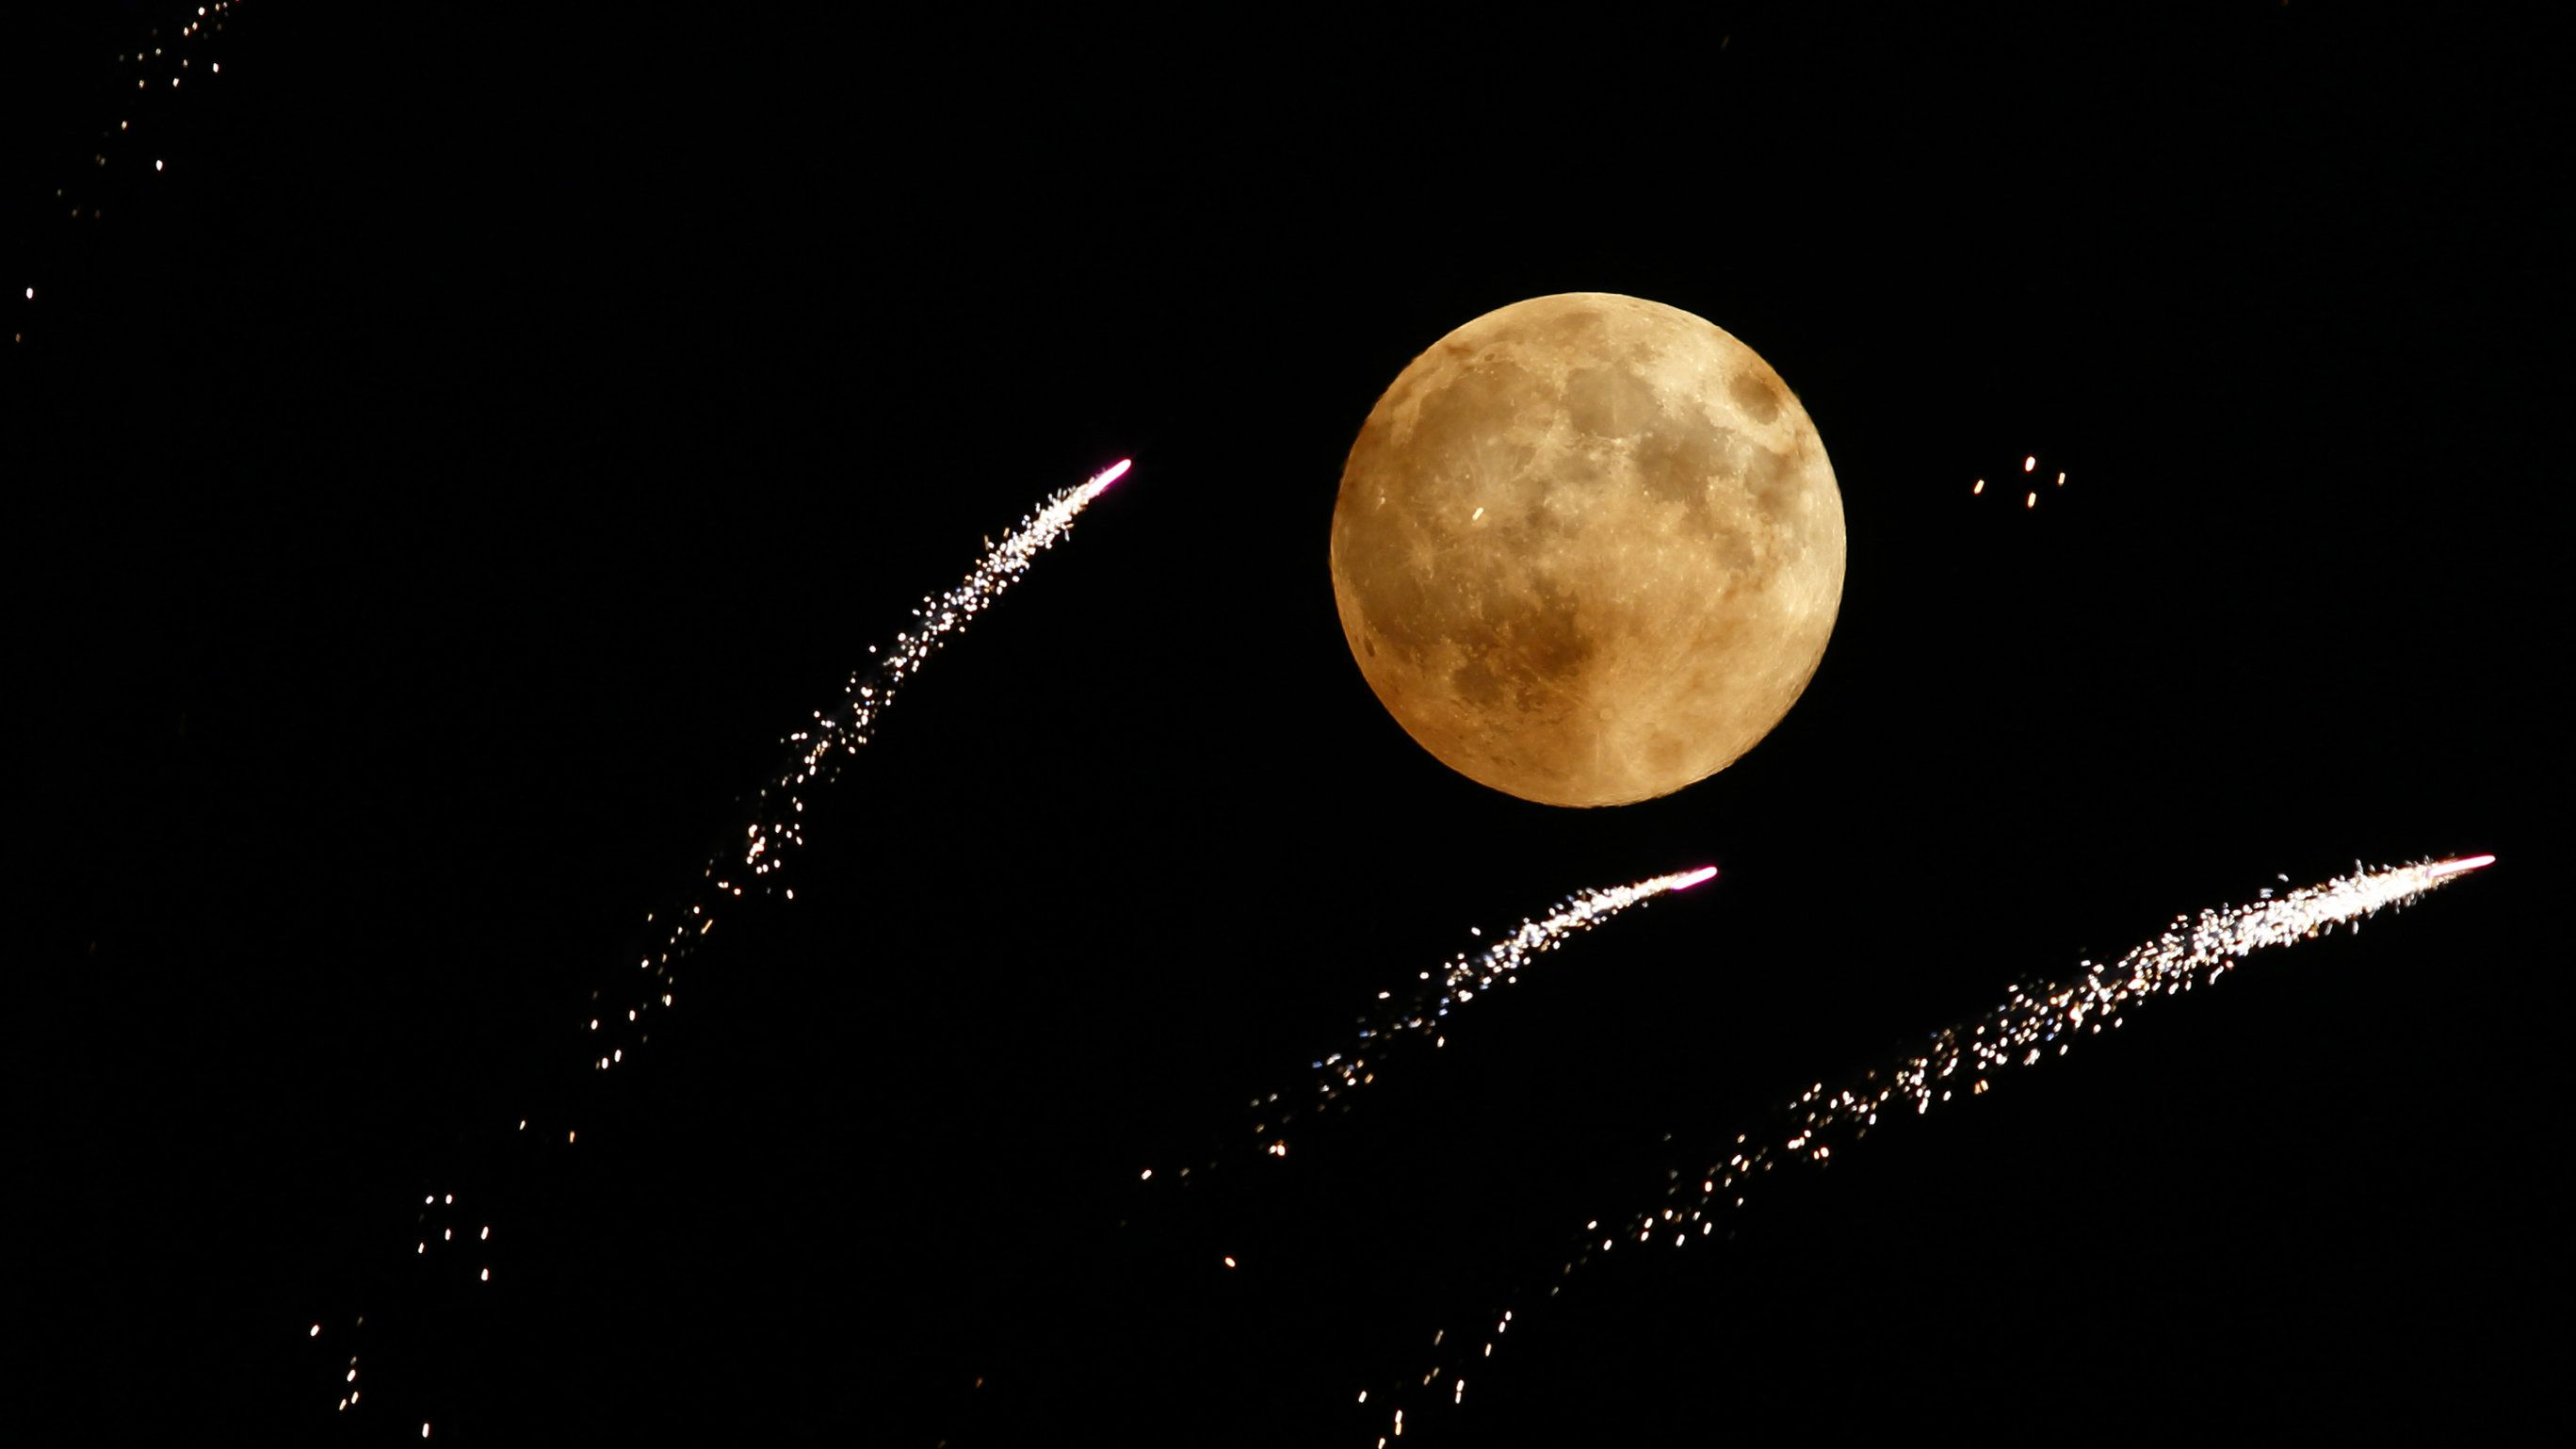 Fireworks streak past in front of the supermoon outside the town of Mosta, celebrating the feast of its patron saint, in central Malta, August 10, 2014. The astronomical event occurs when the moon is closest to the Earth in its orbit, making it appear much larger and brighter than usual.